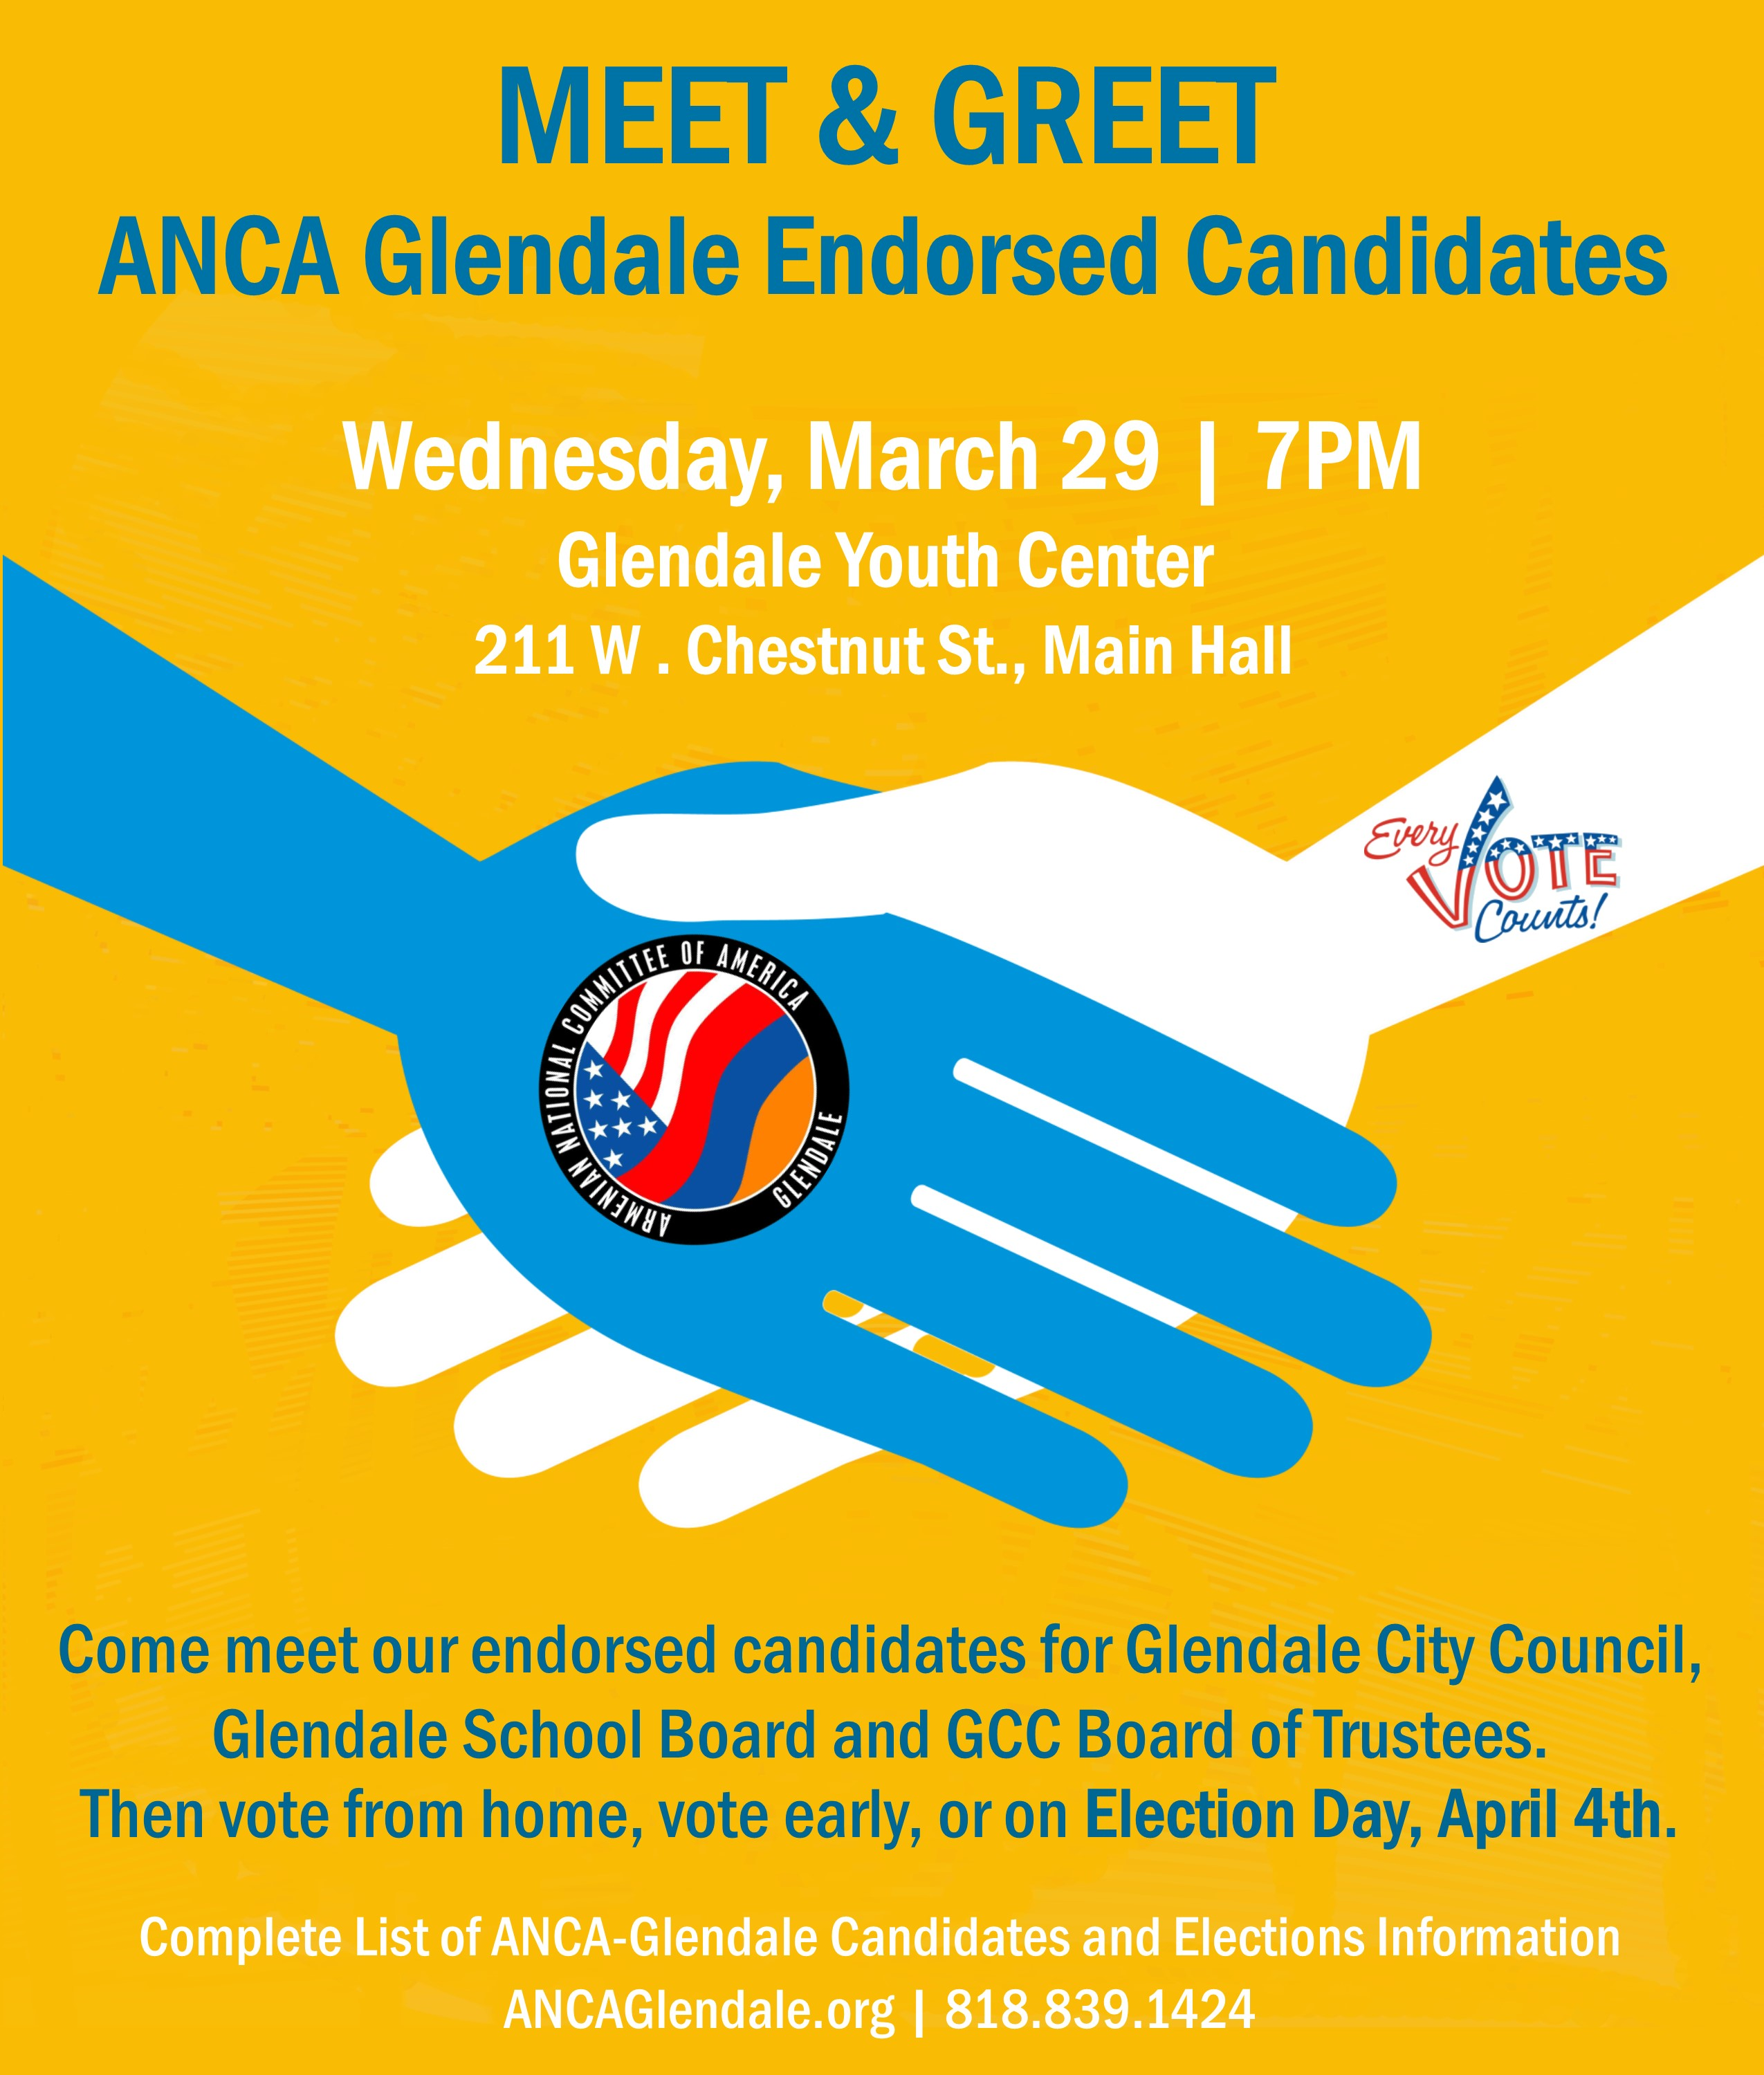 Meet and greet anca glendale endorsed candidates anca glendale event navigation kristyandbryce Gallery